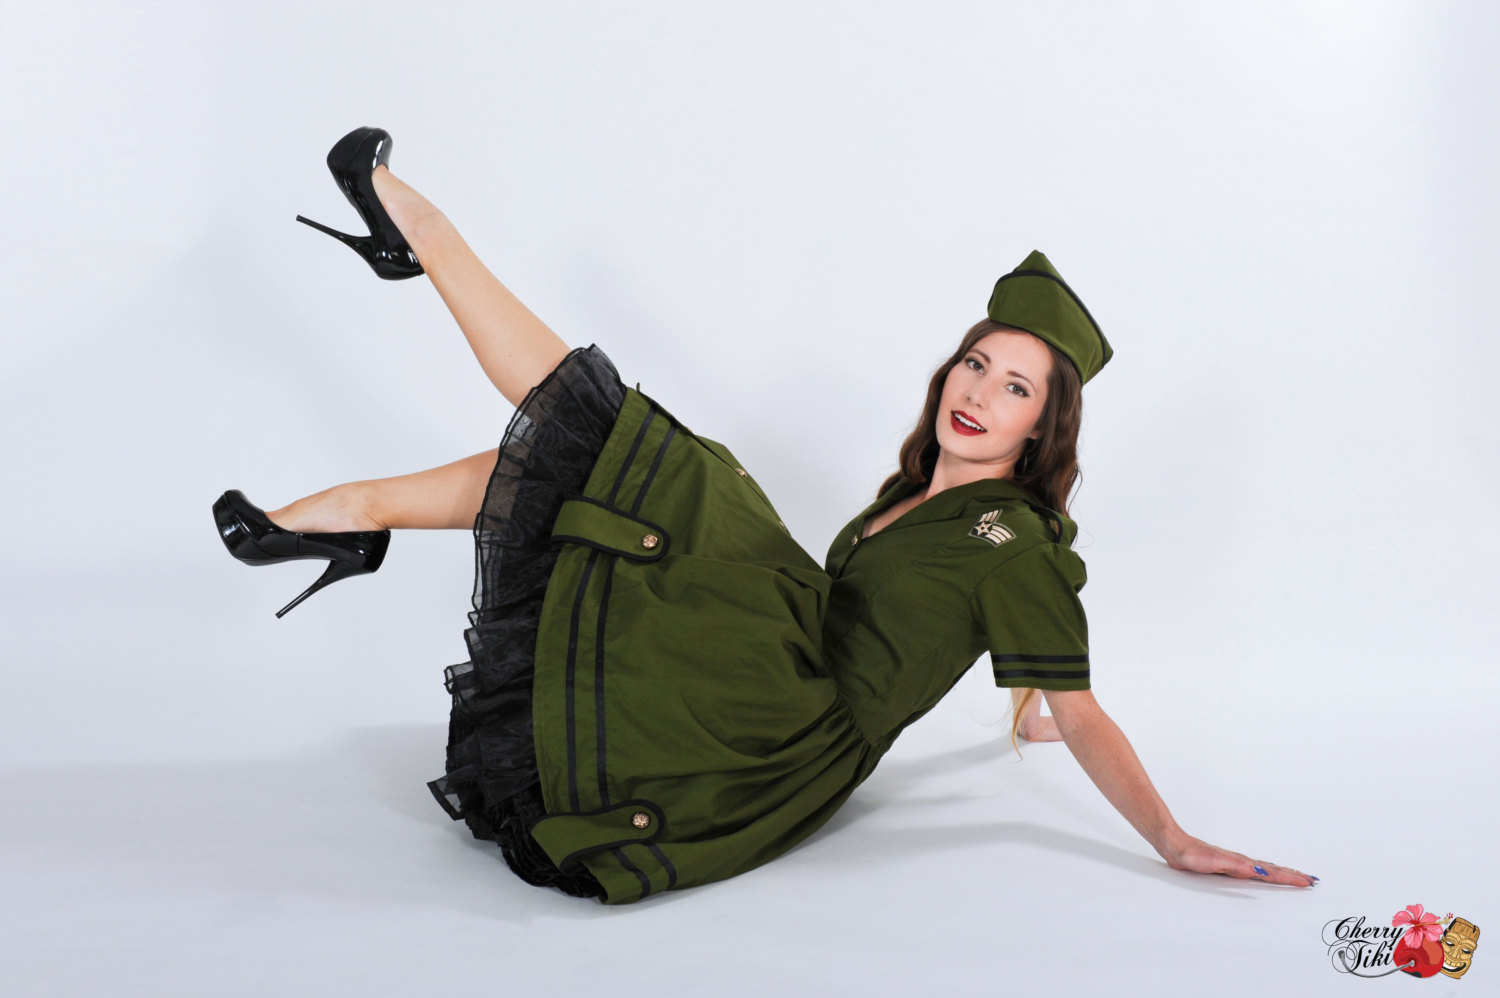 cherry tiki creates cosplay and halloween costumes that are inspired by the 50s pinup and rockabilly this green army dress is so fun flirty - Pin Up Girl Halloween Costumes 2017